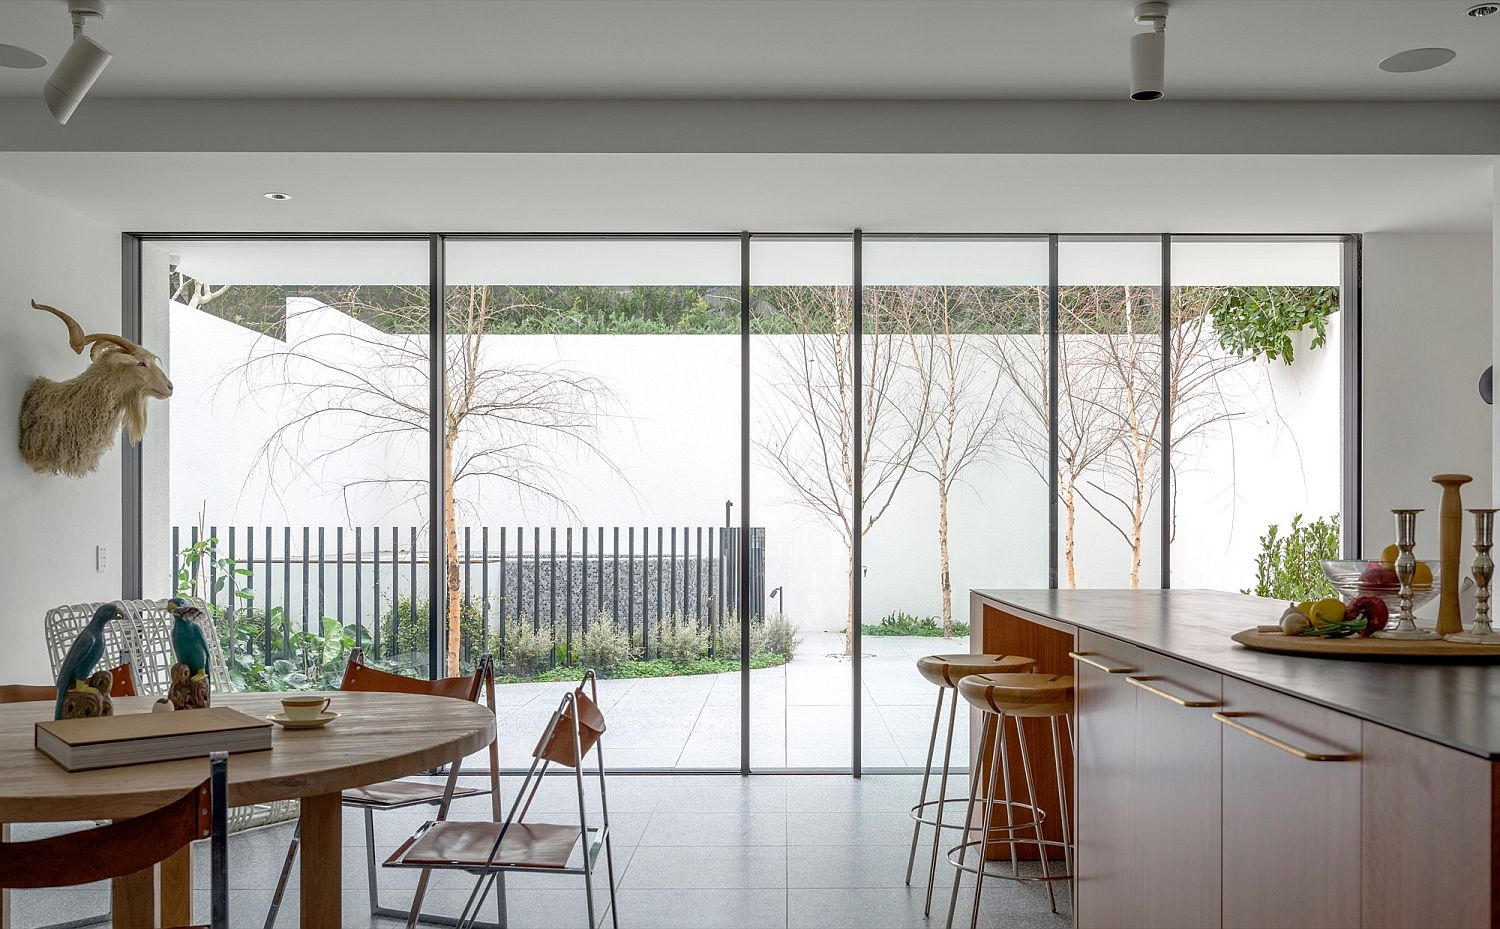 Kitchen and dining area connected with the view outside